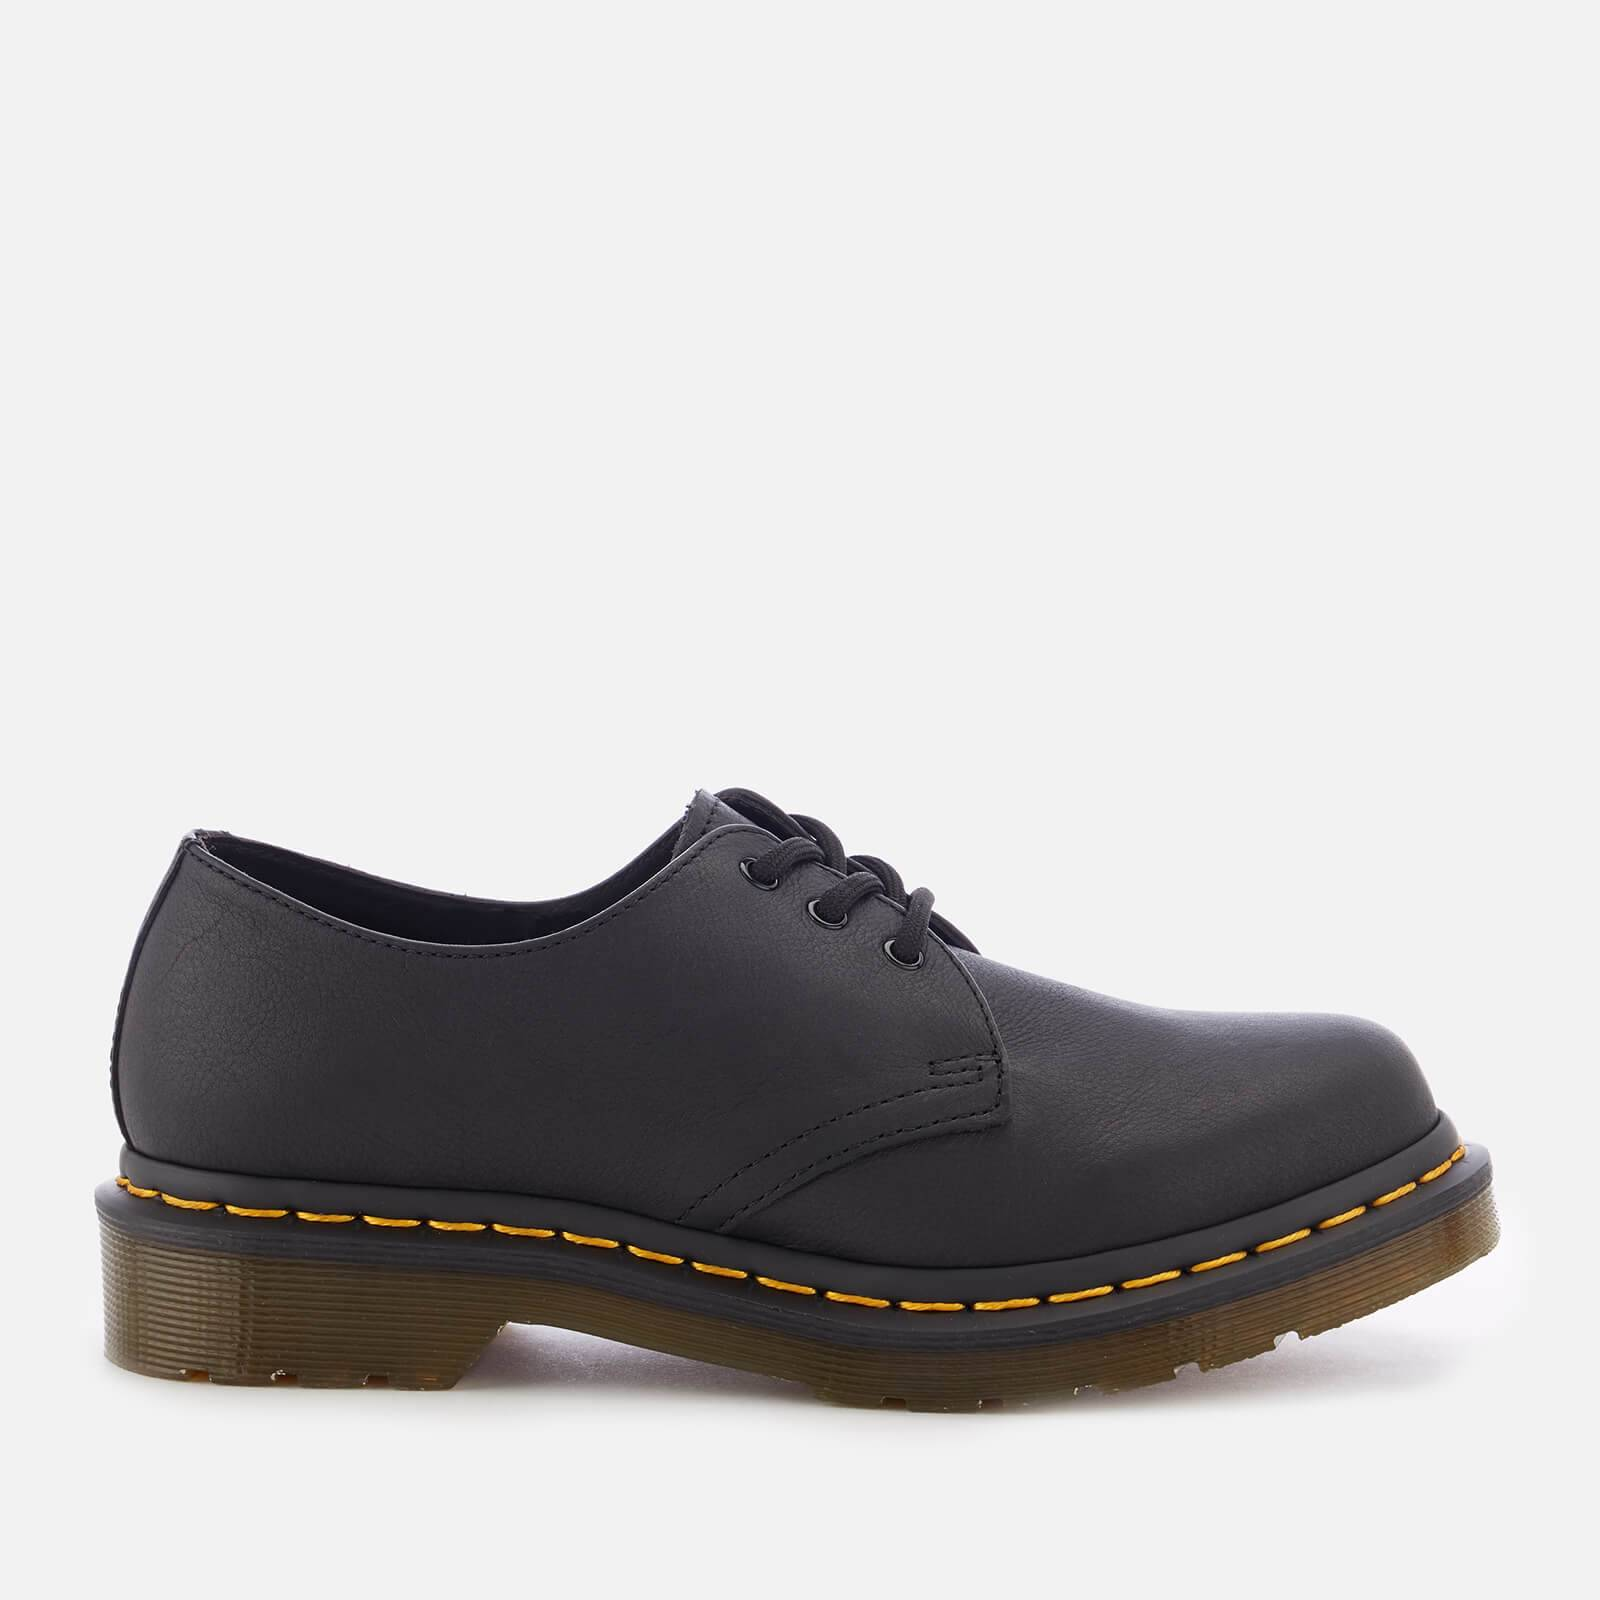 Dr. Martens Women's 1461 W Virginia Leather 3-Eye Shoes - Black - UK 5 - Black